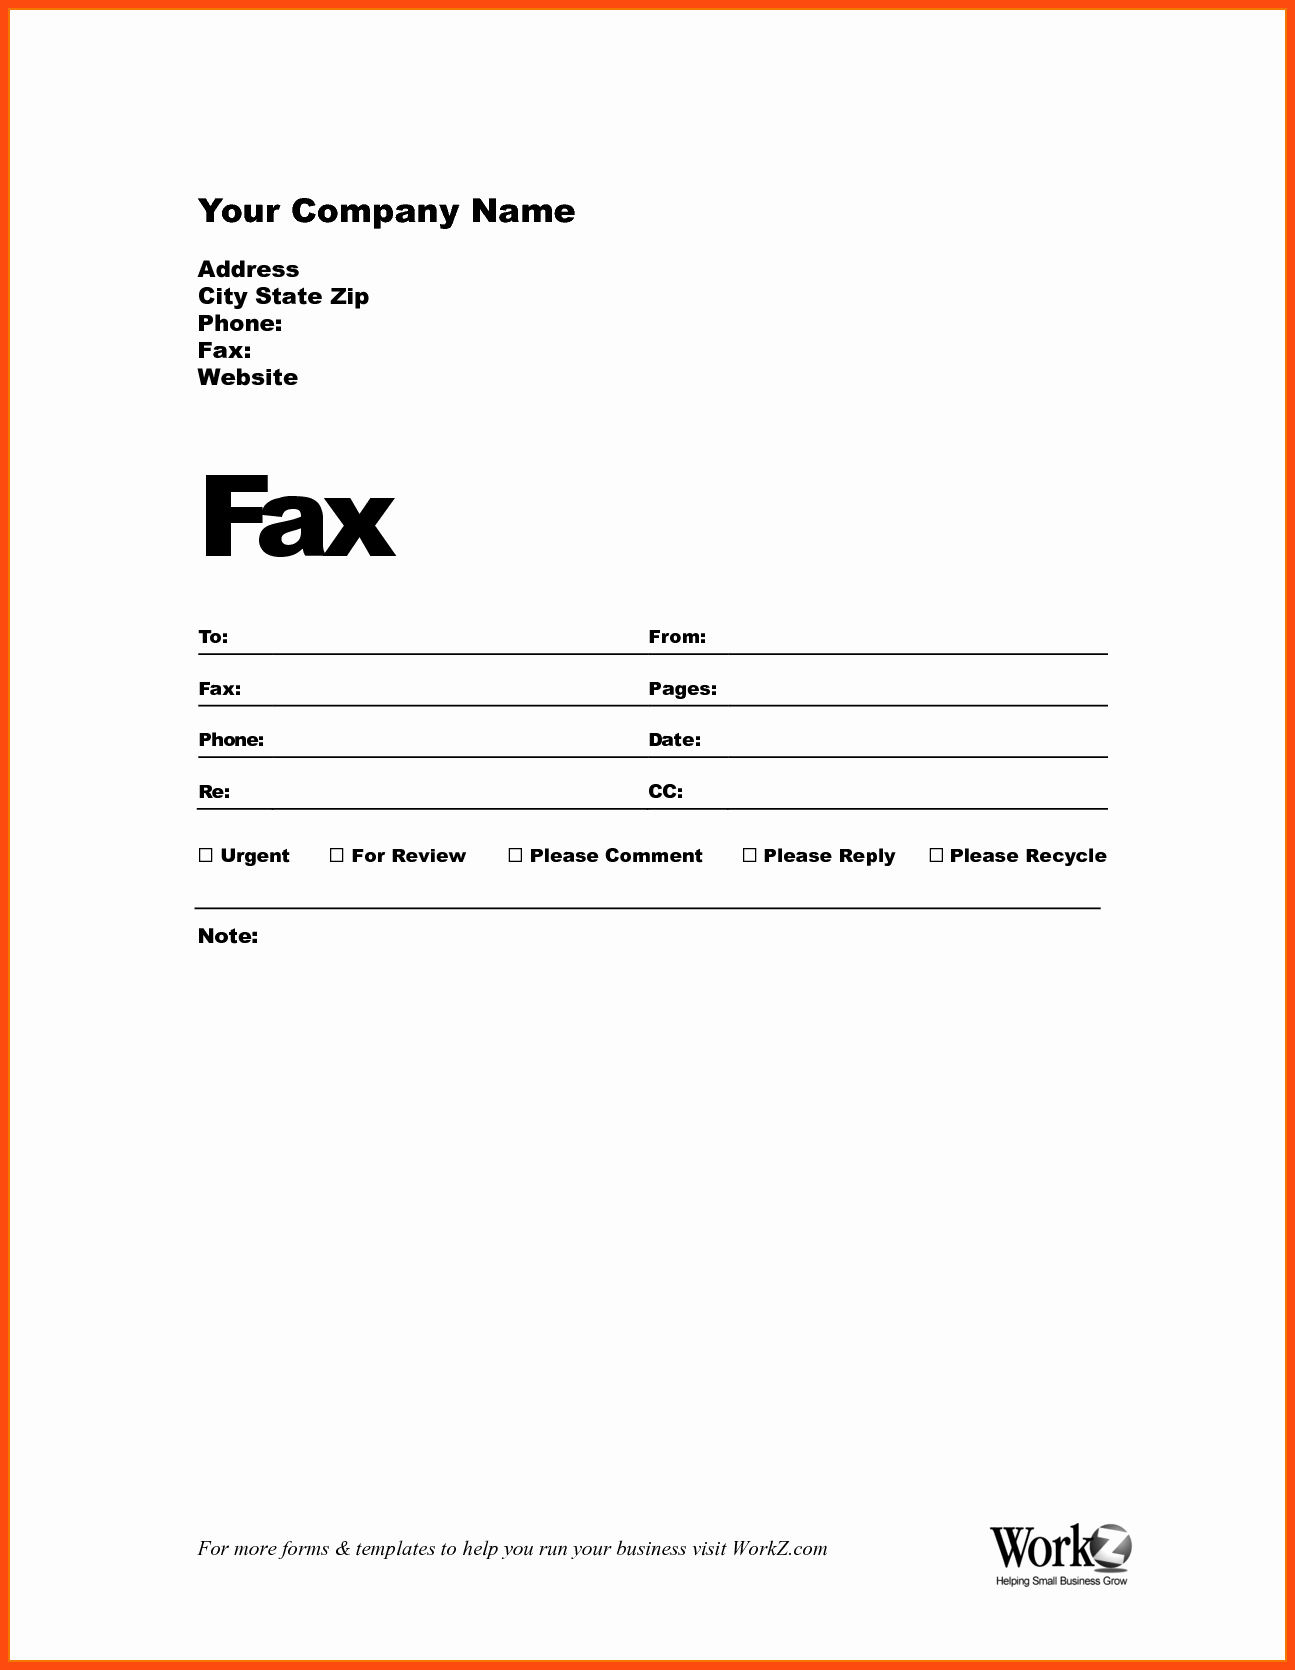 How to format A Fax Fresh How to Fill Out A Fax Cover Sheet